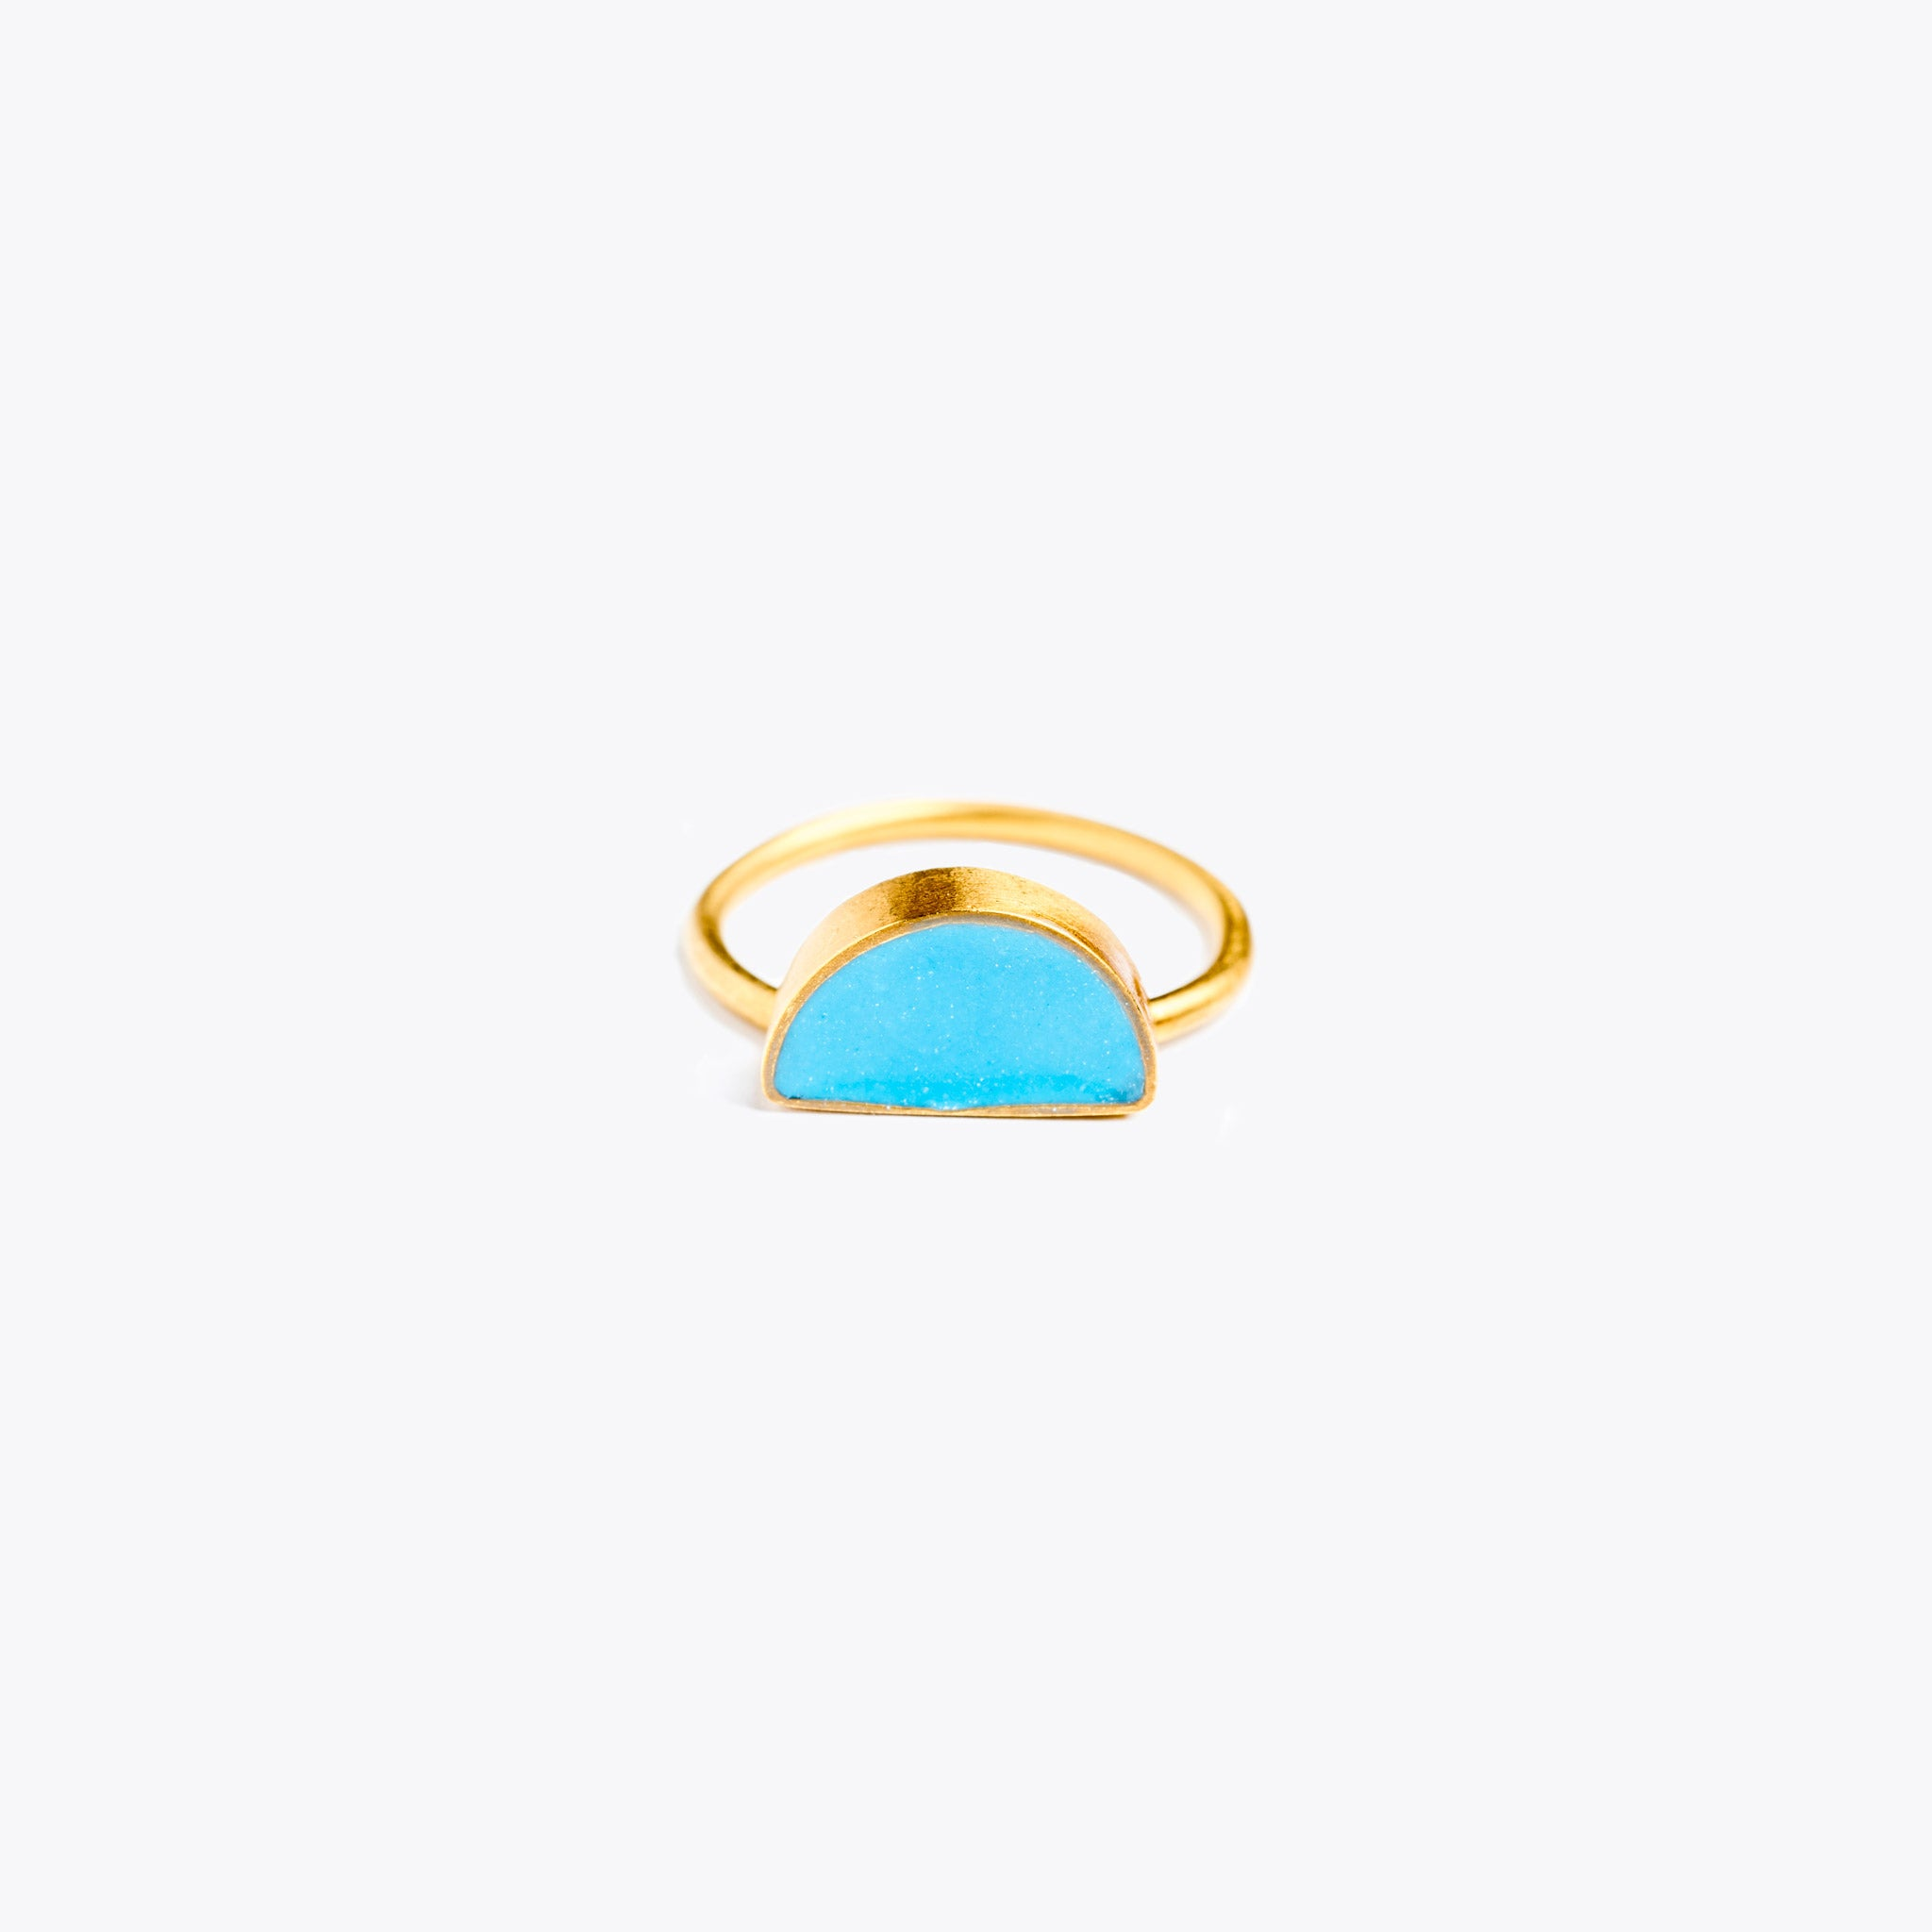 Wanderlust Life Ethically Handmade jewellery made in the UK. Minimalist gold and fine cord jewellery. sunburst enamel ring, azure blue